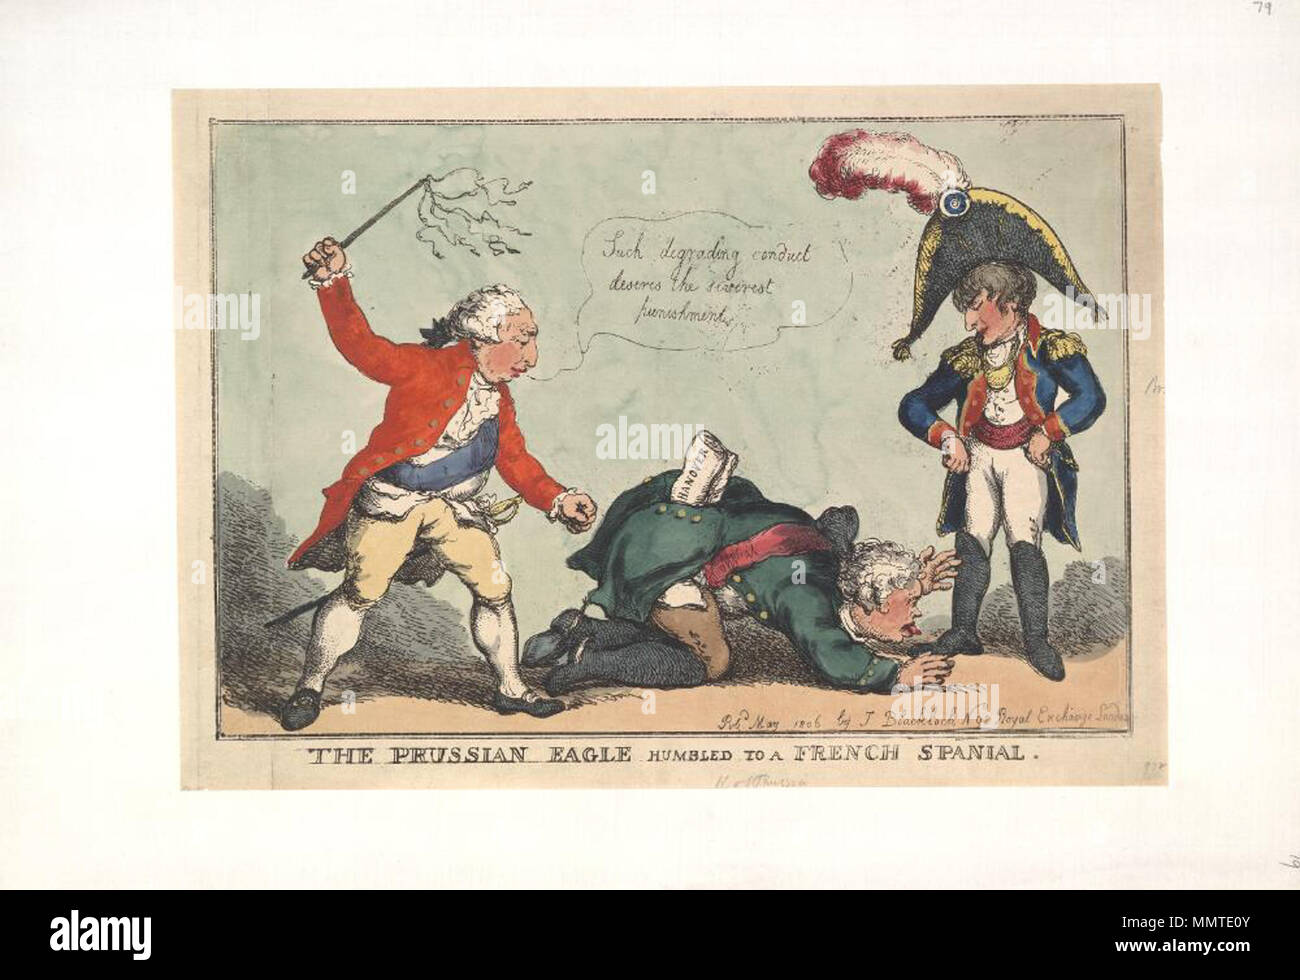 . Satire on the Napoleonic wars. (British political cartoon); Frederick William III, with the state of Hanover in his back pocket, kneels to lick the boots of Napoleon. George III prepares to flog the Prussian's backside in punishment.; Not in BMC  The Prussian eagle humbled to a French spanial. May 1806. Bodleian Libraries, The Prussian eagle humbled to a French spanial - Stock Image